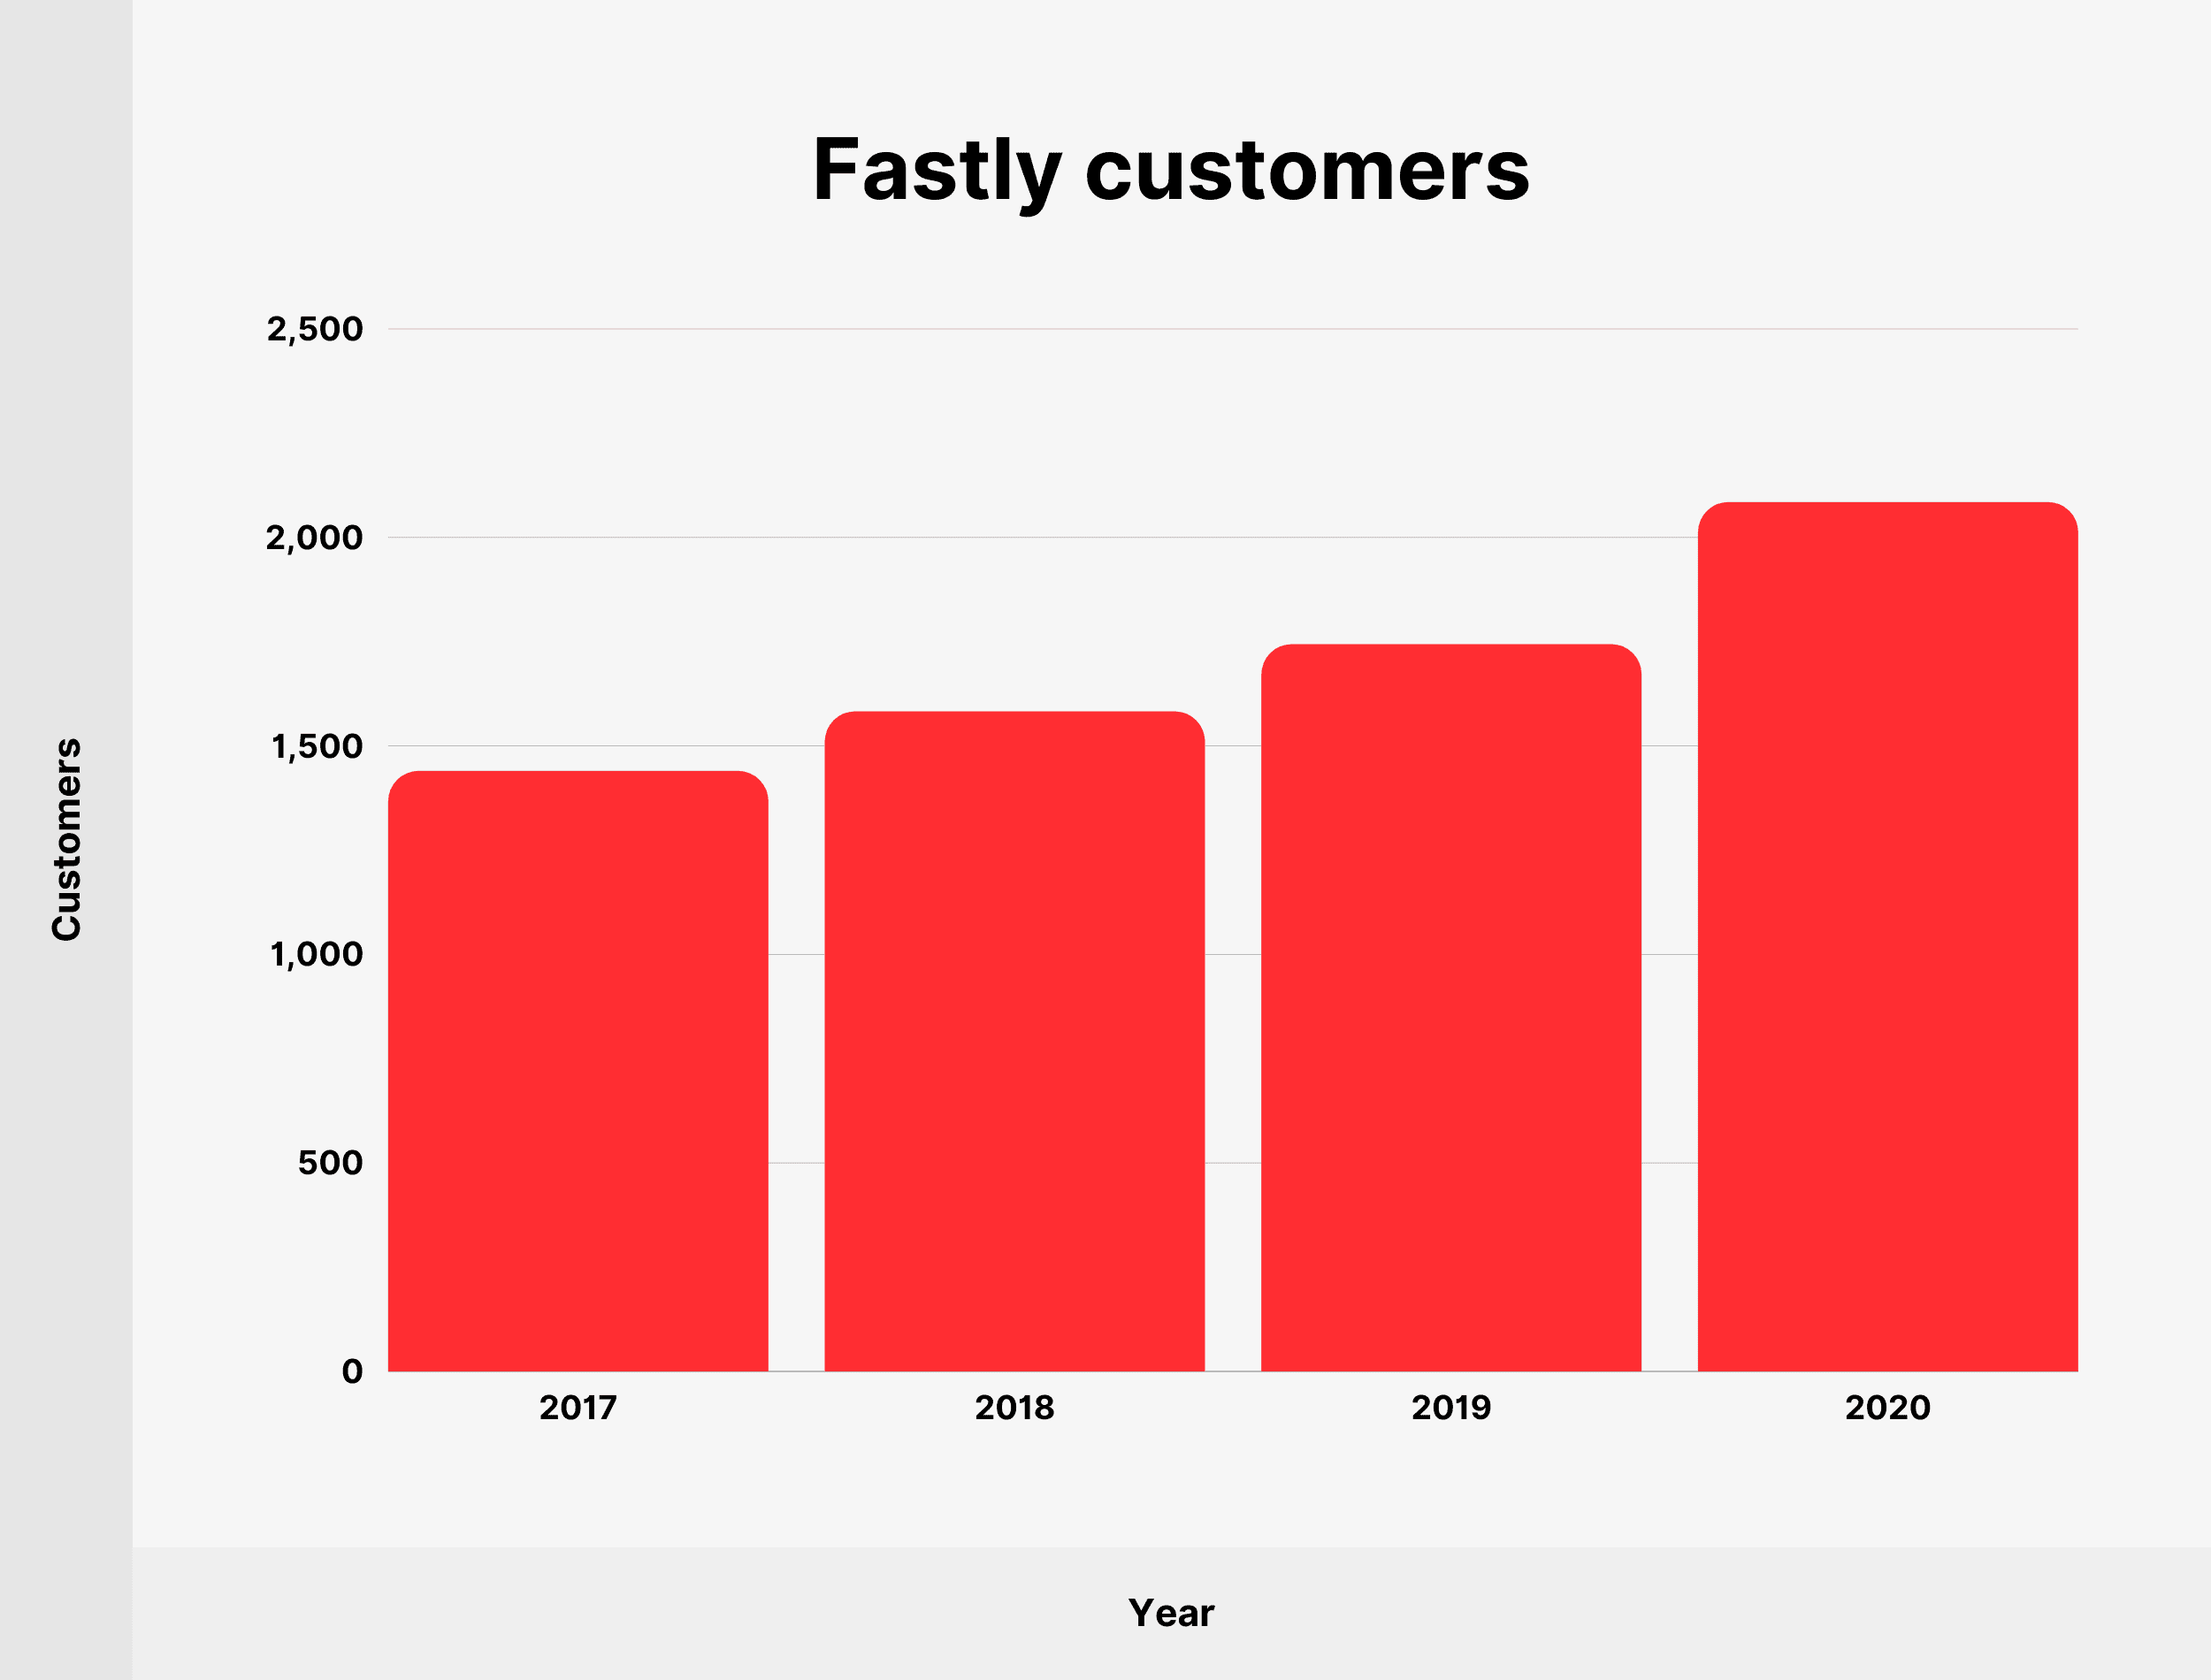 Fastly customers